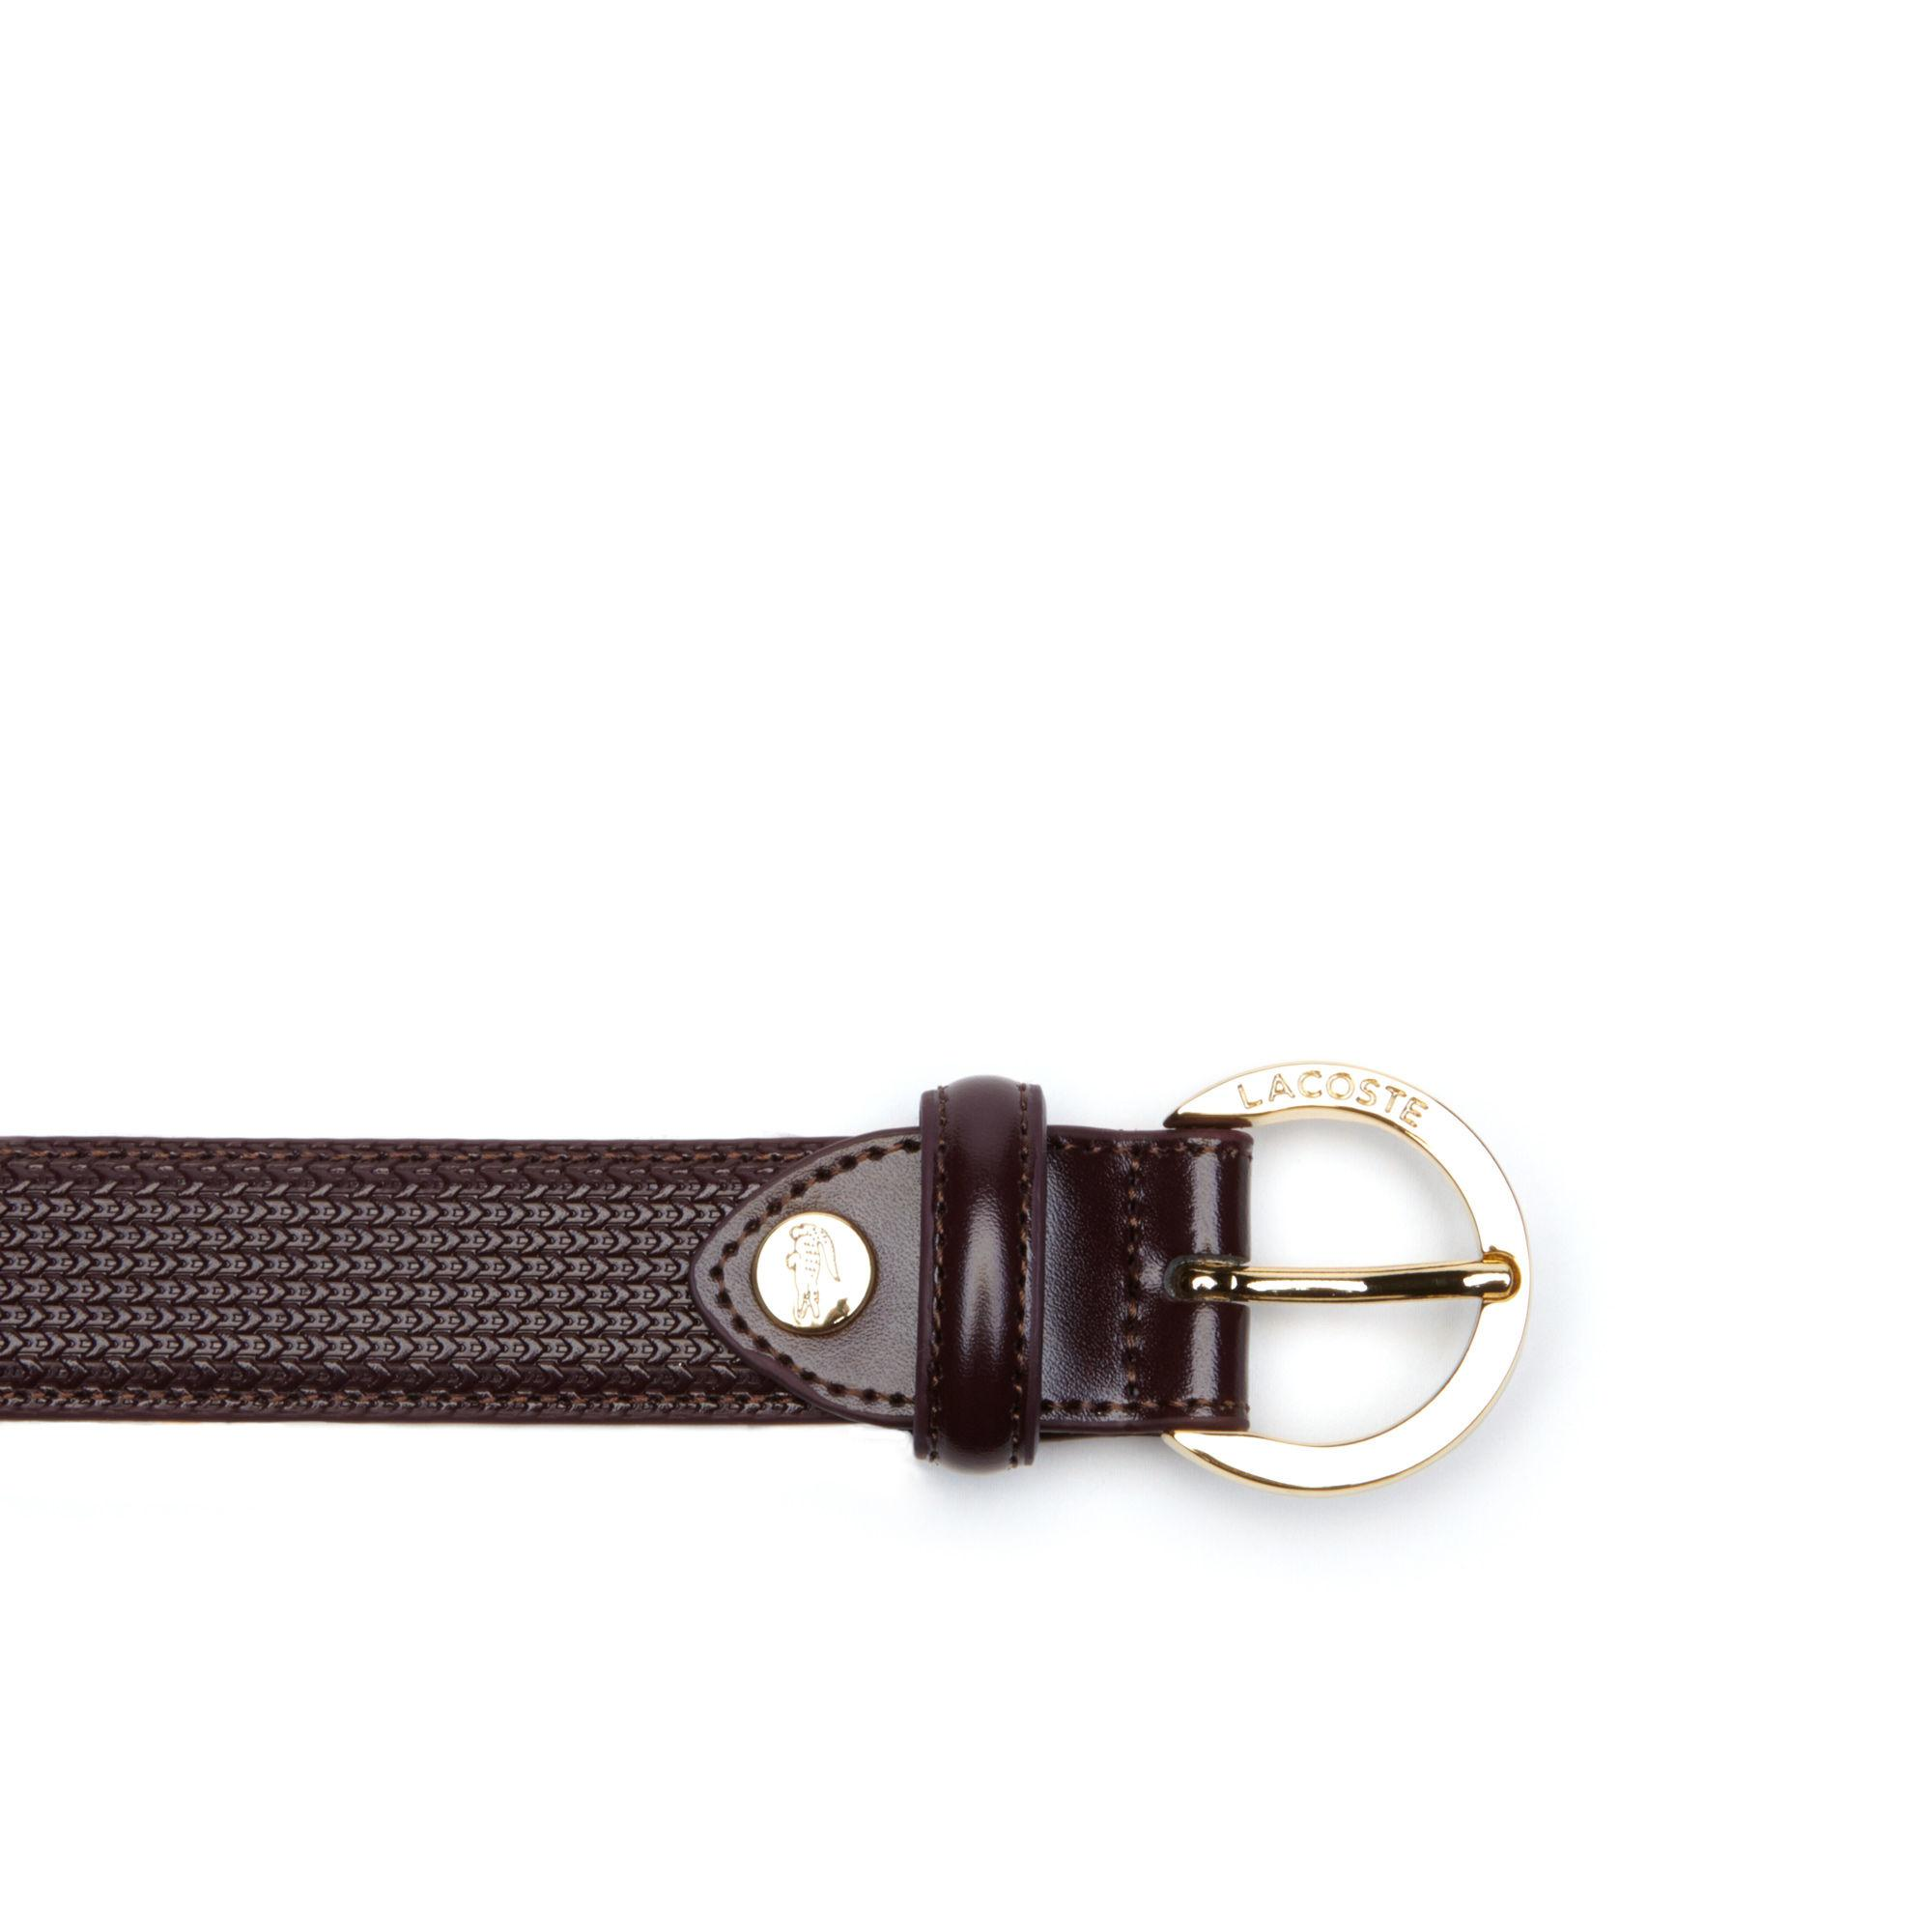 91eccf38c1741 Lacoste - Brown Chantaco Engraved Round Buckle Leather Belt - Lyst. View  fullscreen